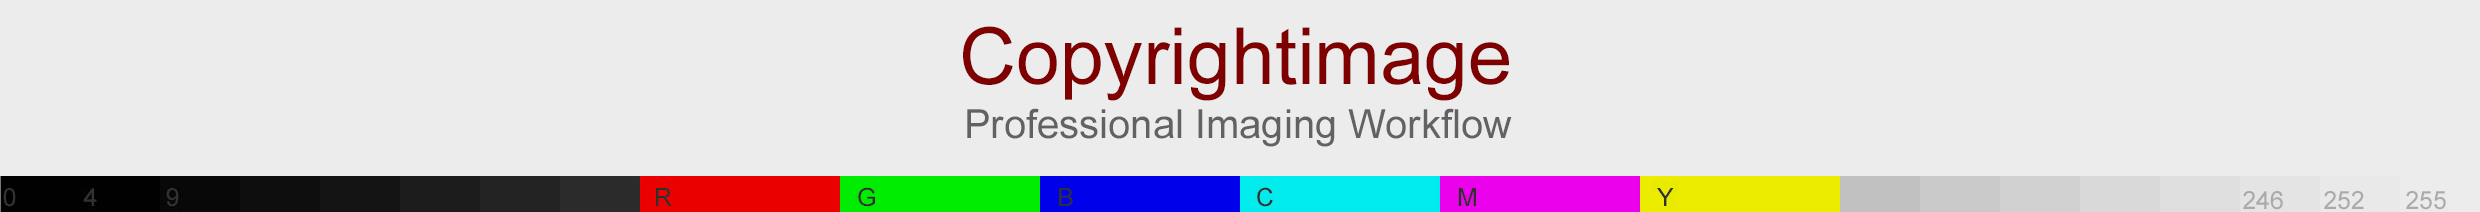 Copyrightimage